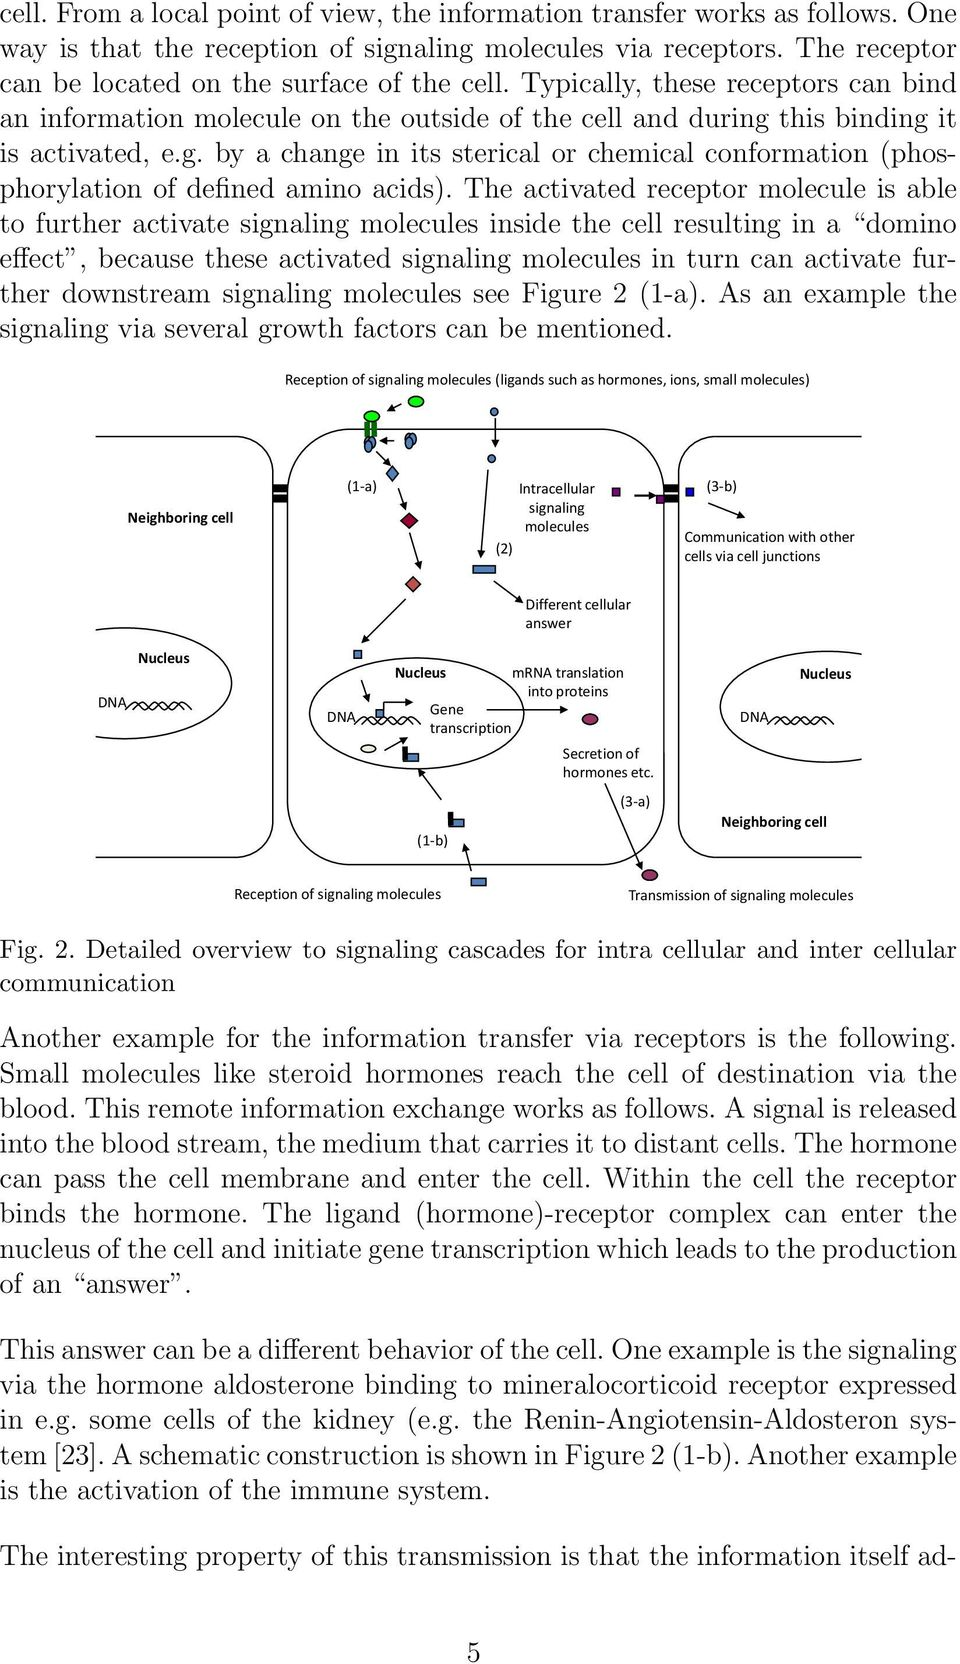 The activated receptor molecule is able to further activate signaling molecules inside the cell resulting in a domino effect, because these activated signaling molecules in turn can activate further